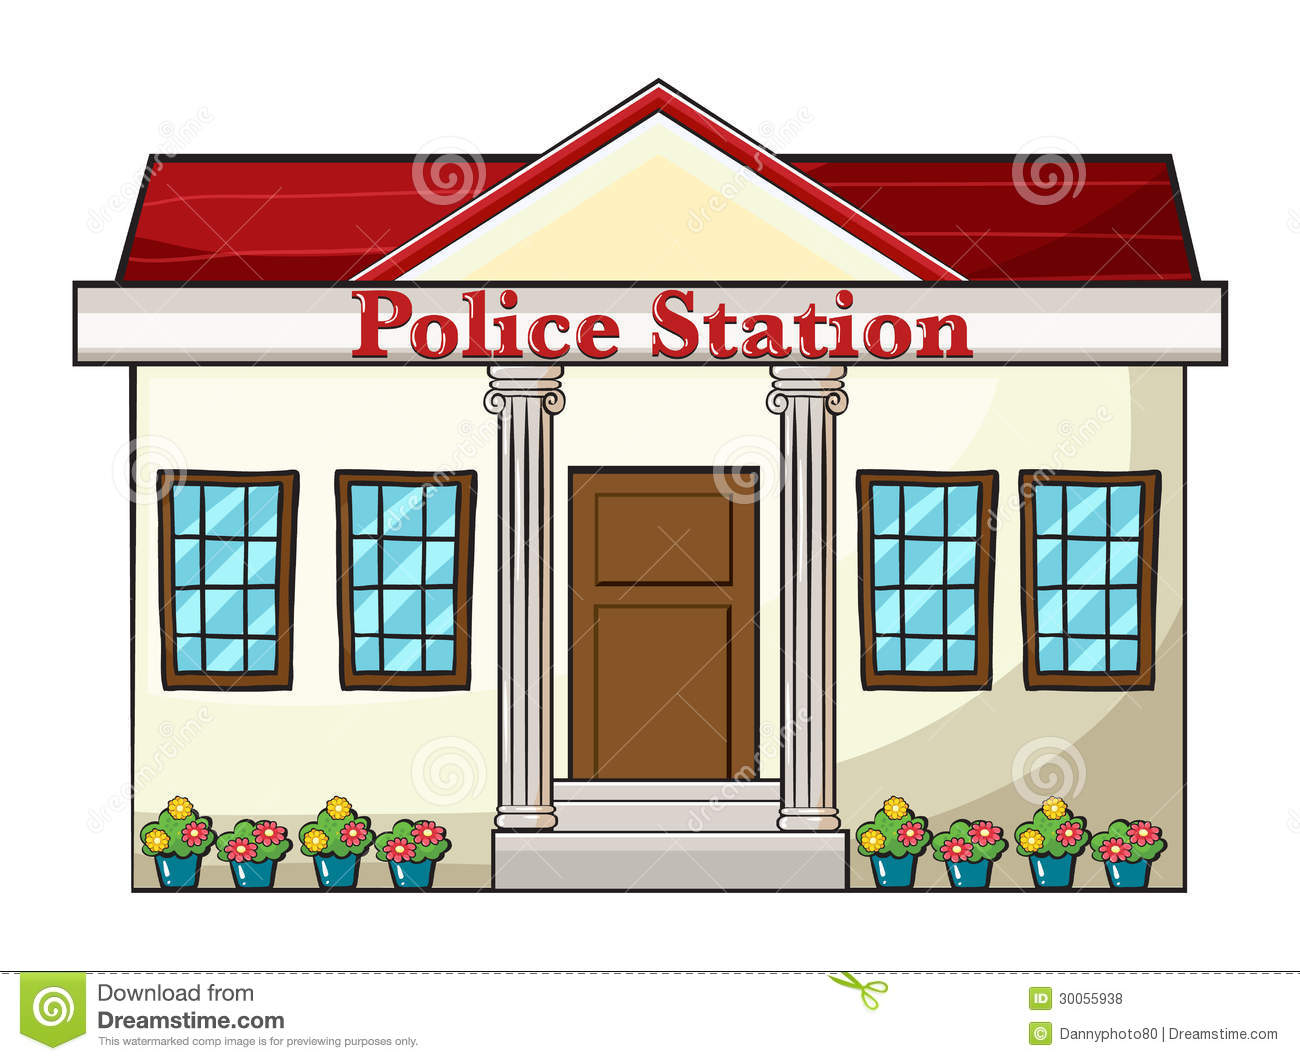 Police Station Clipart.